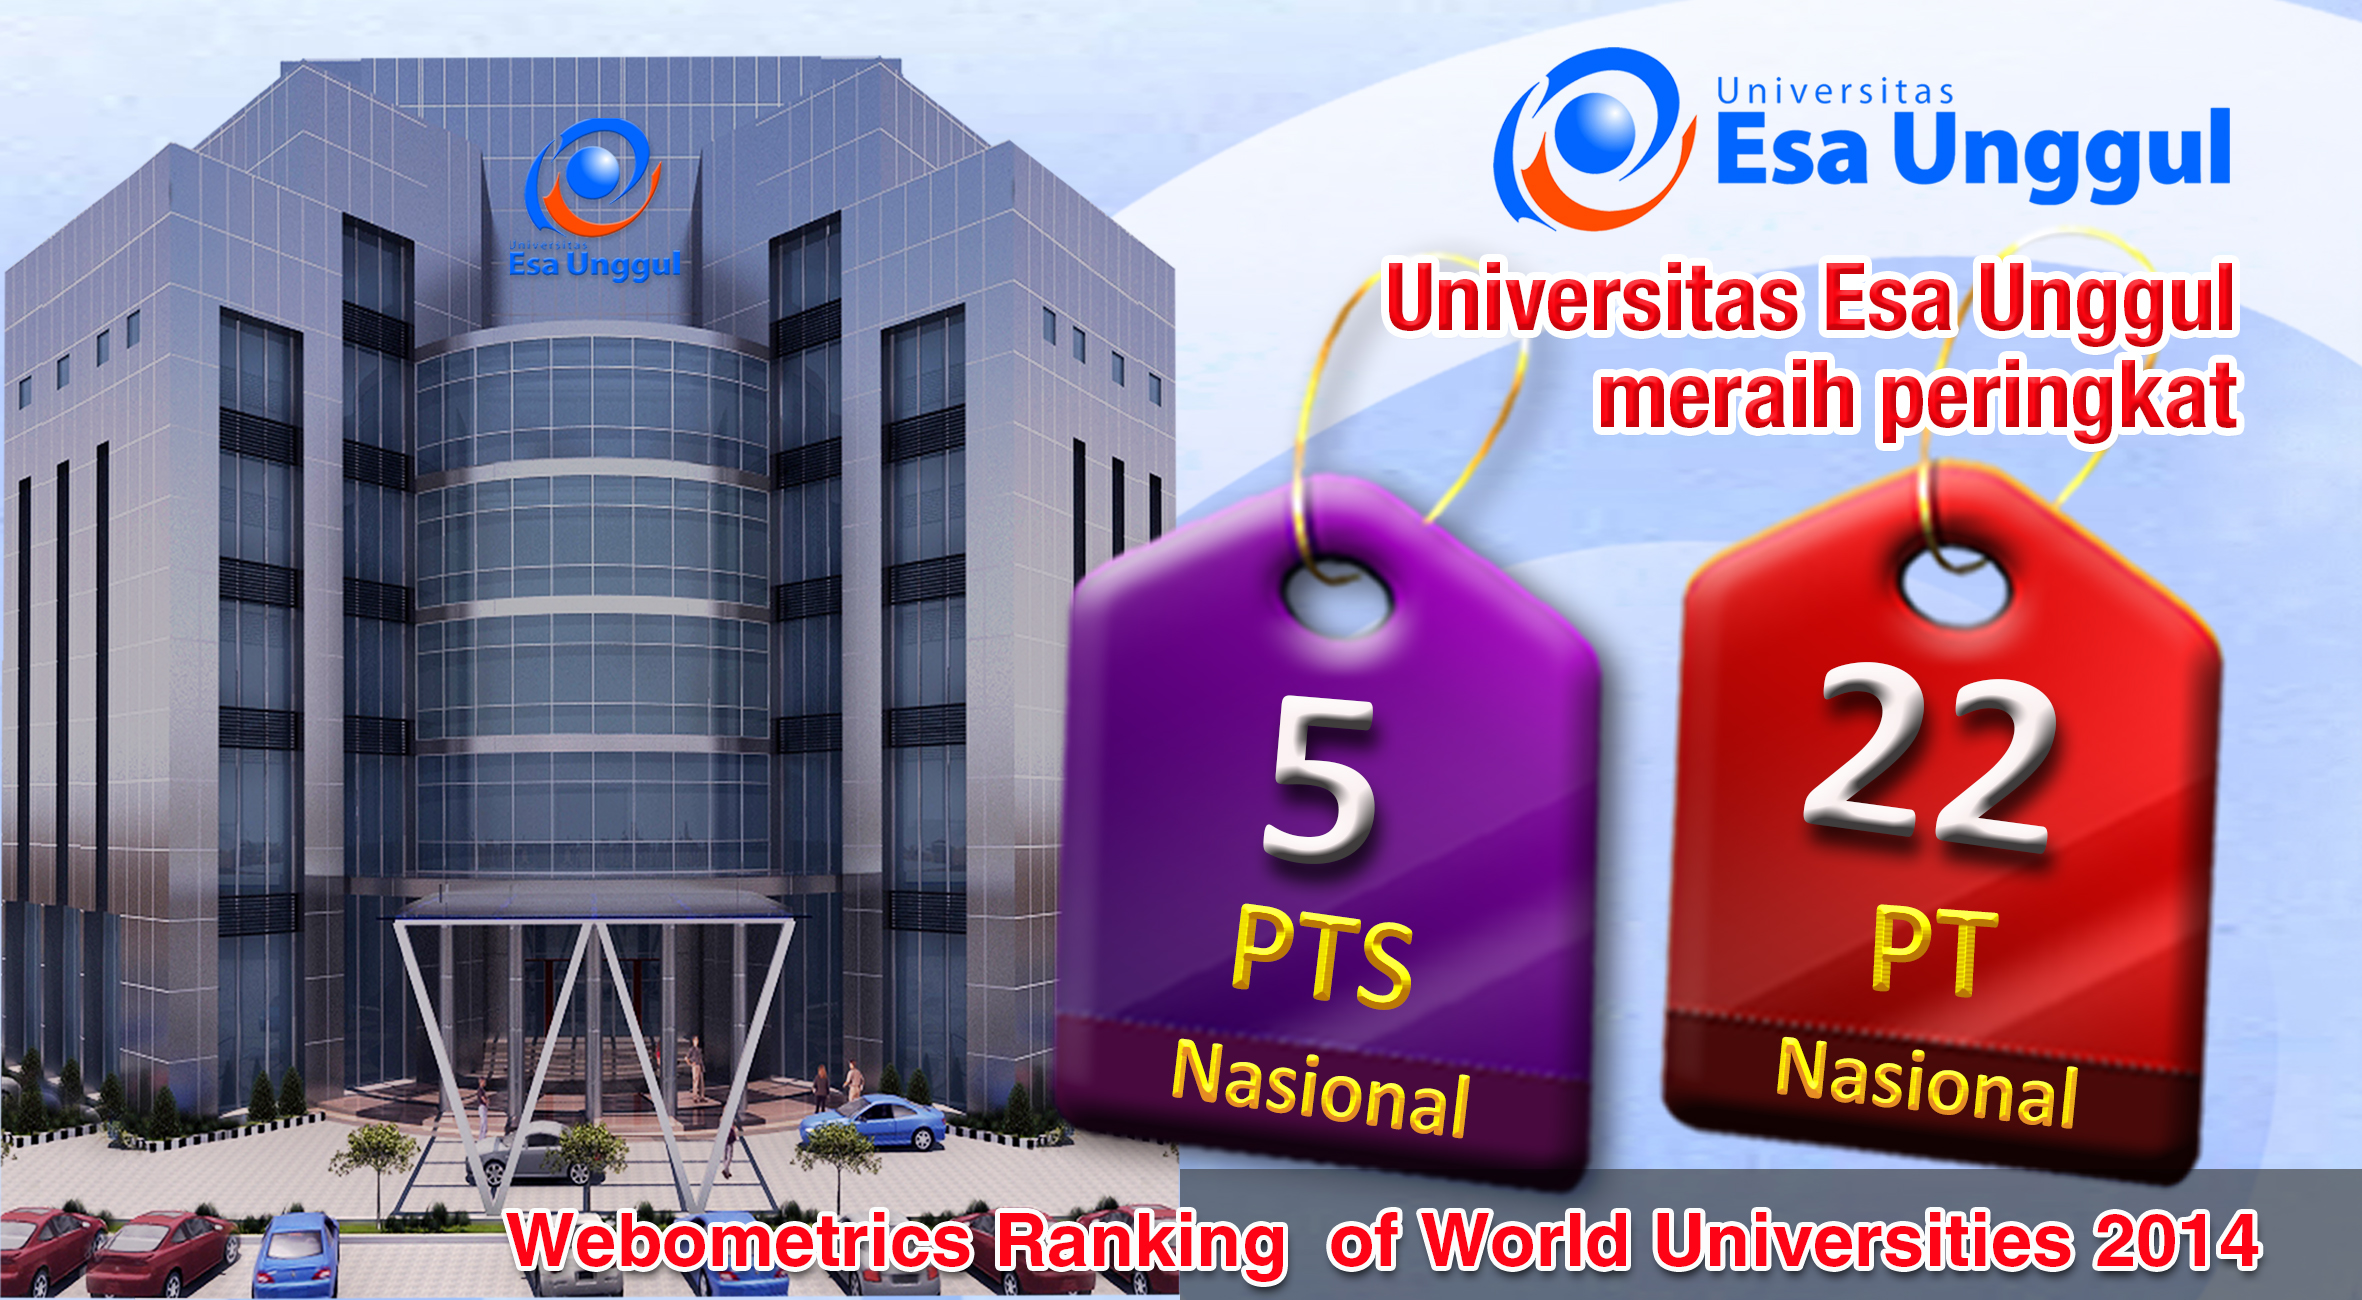 Universitas Esa Unggul Meraih Peringkat Terbaik ke-5 PTS se-Indonesia Webometrics Ranking of World Universities – Juli  2014